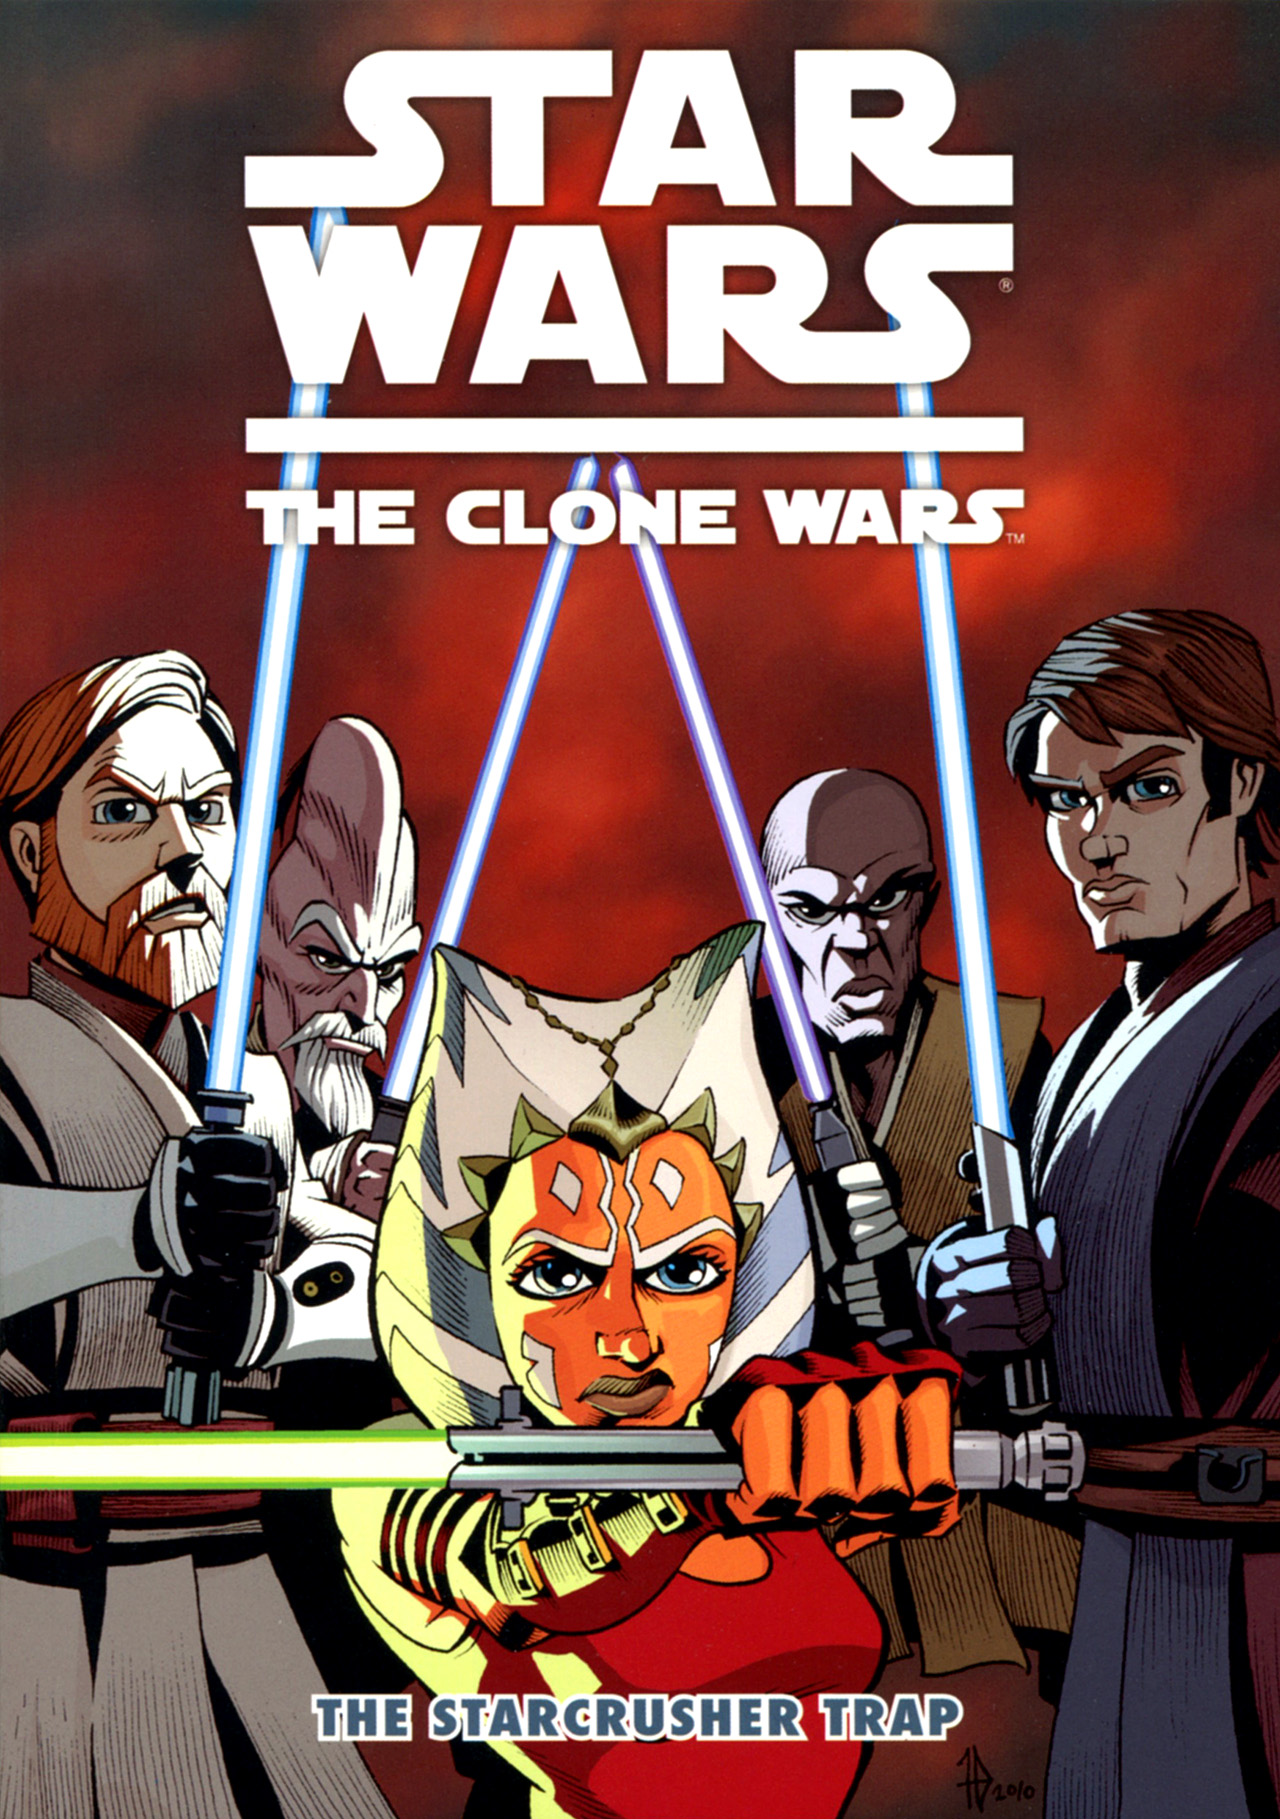 Read online Star Wars: The Clone Wars - The Starcrusher Trap comic -  Issue # Full - 1